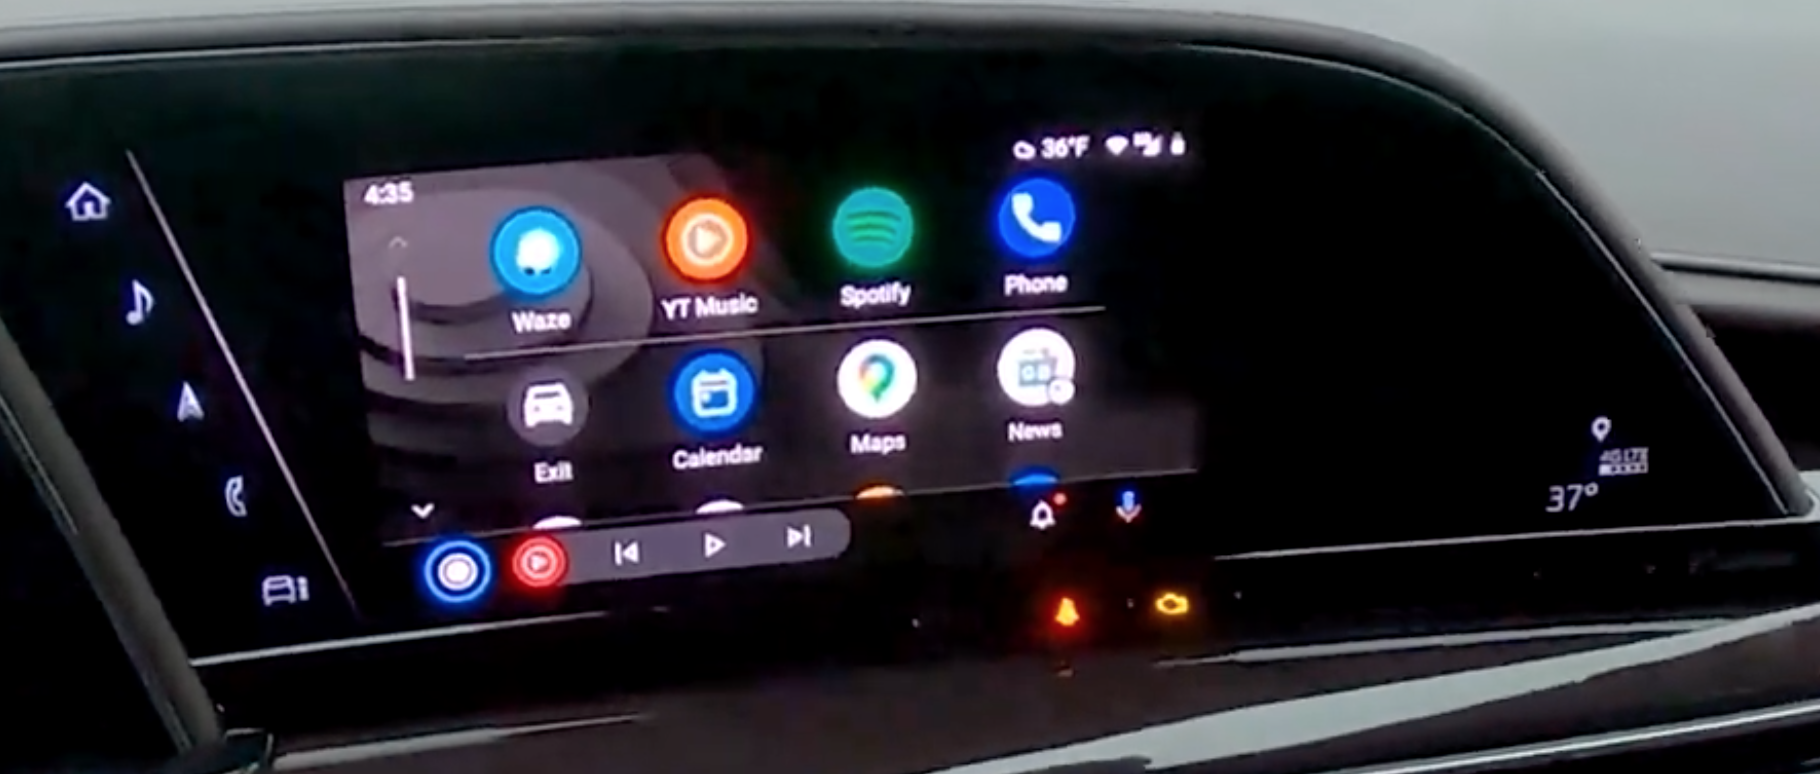 How the Android Auto interface looks on the infotainment screen